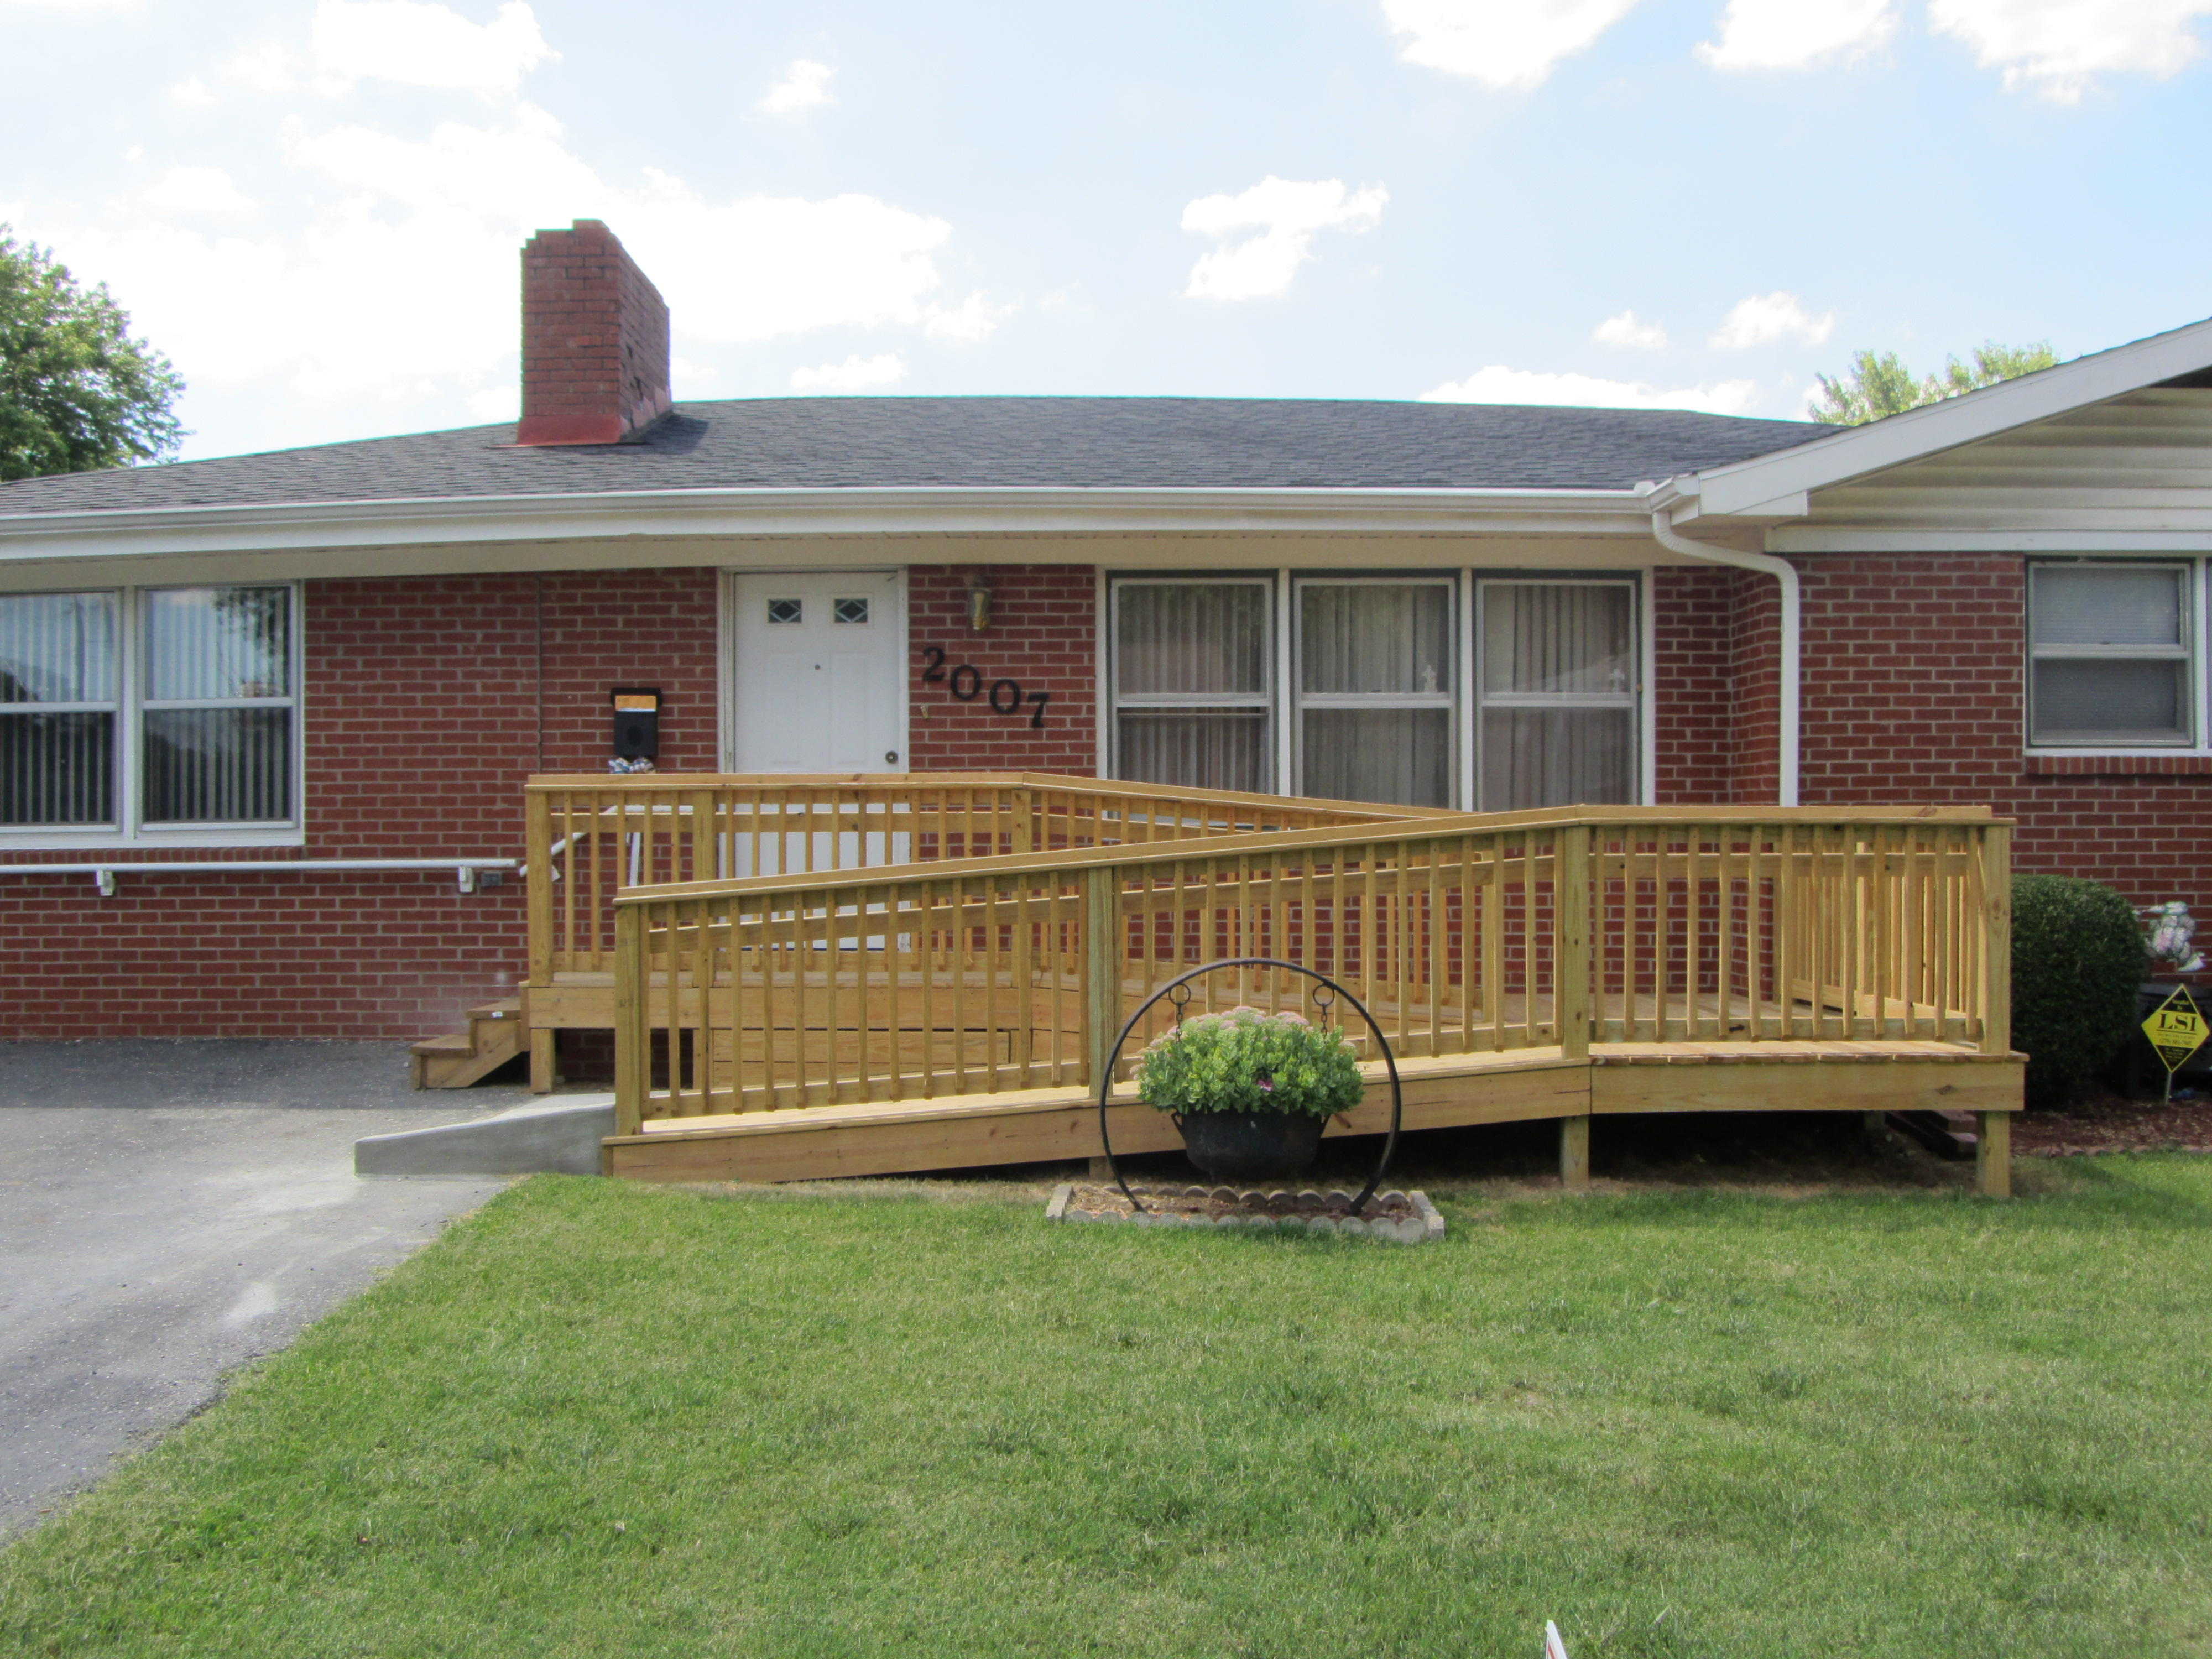 Creative Remodeling Home Improvement Contractors Clarksville Tennessee